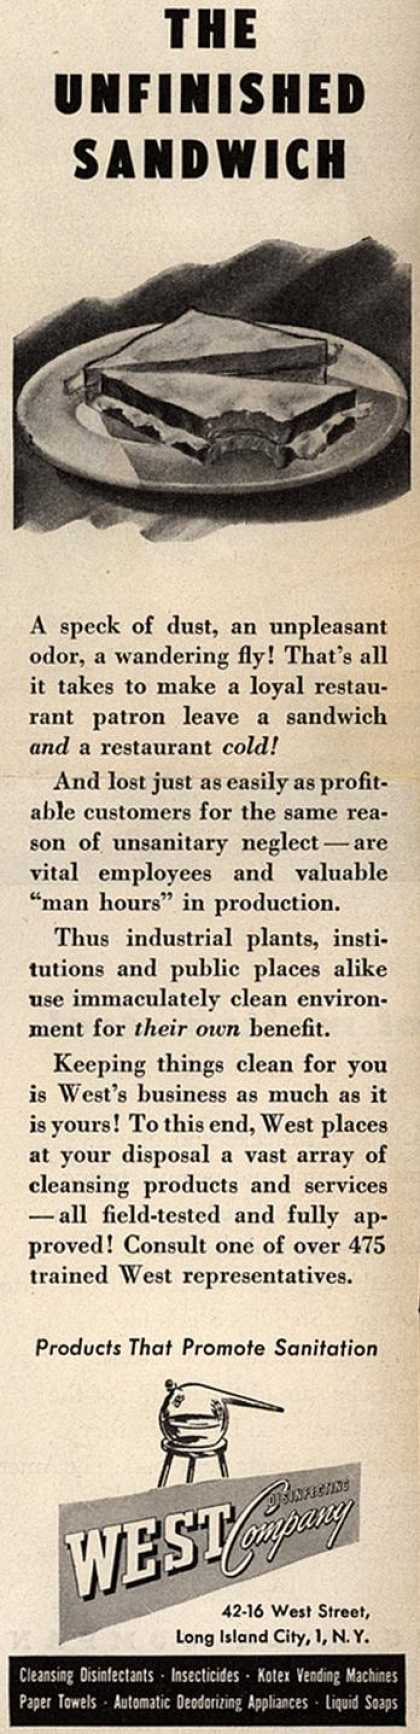 West Disinfecting Company's Cleansing products and services – The Unfinished Sandwich (1947)